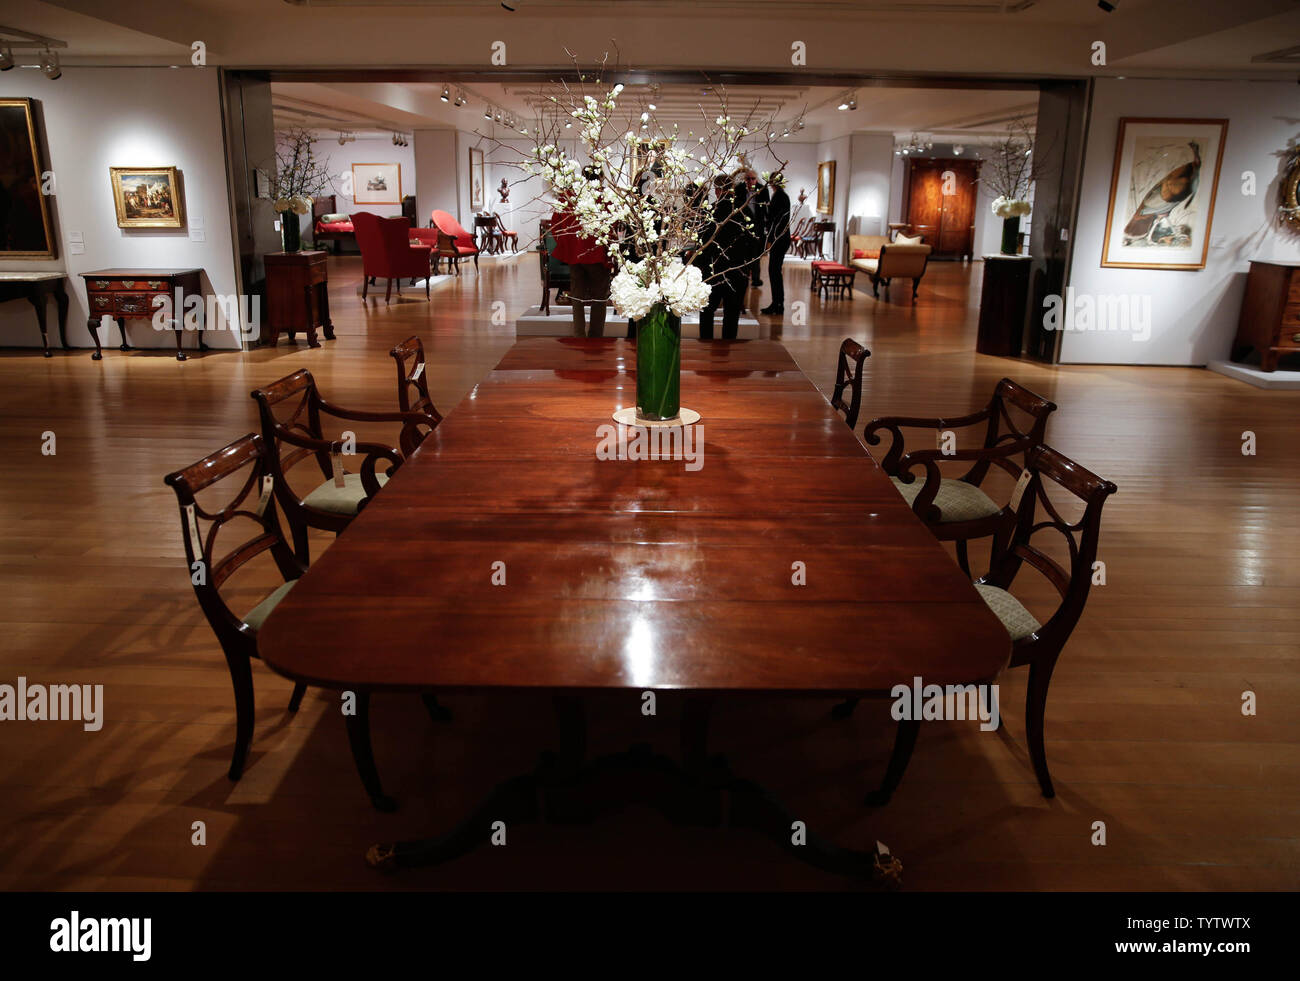 Furniture and works of art are on display at a press preview of an upcoming auction titled 'Important American Furniture, Folk Art, Silver and Prints' at Christie's in New York City on January 12, 2019. The auction features Ammi Phillips' 'Girl in a Red Dress with a Dog', and Edward Hicks' 'Peaceable Kingdom, both estd $800,000 - $1.2 million. The auction takes place on January 17th and 18th.     Photo by John Angelillo/UPI - Stock Image